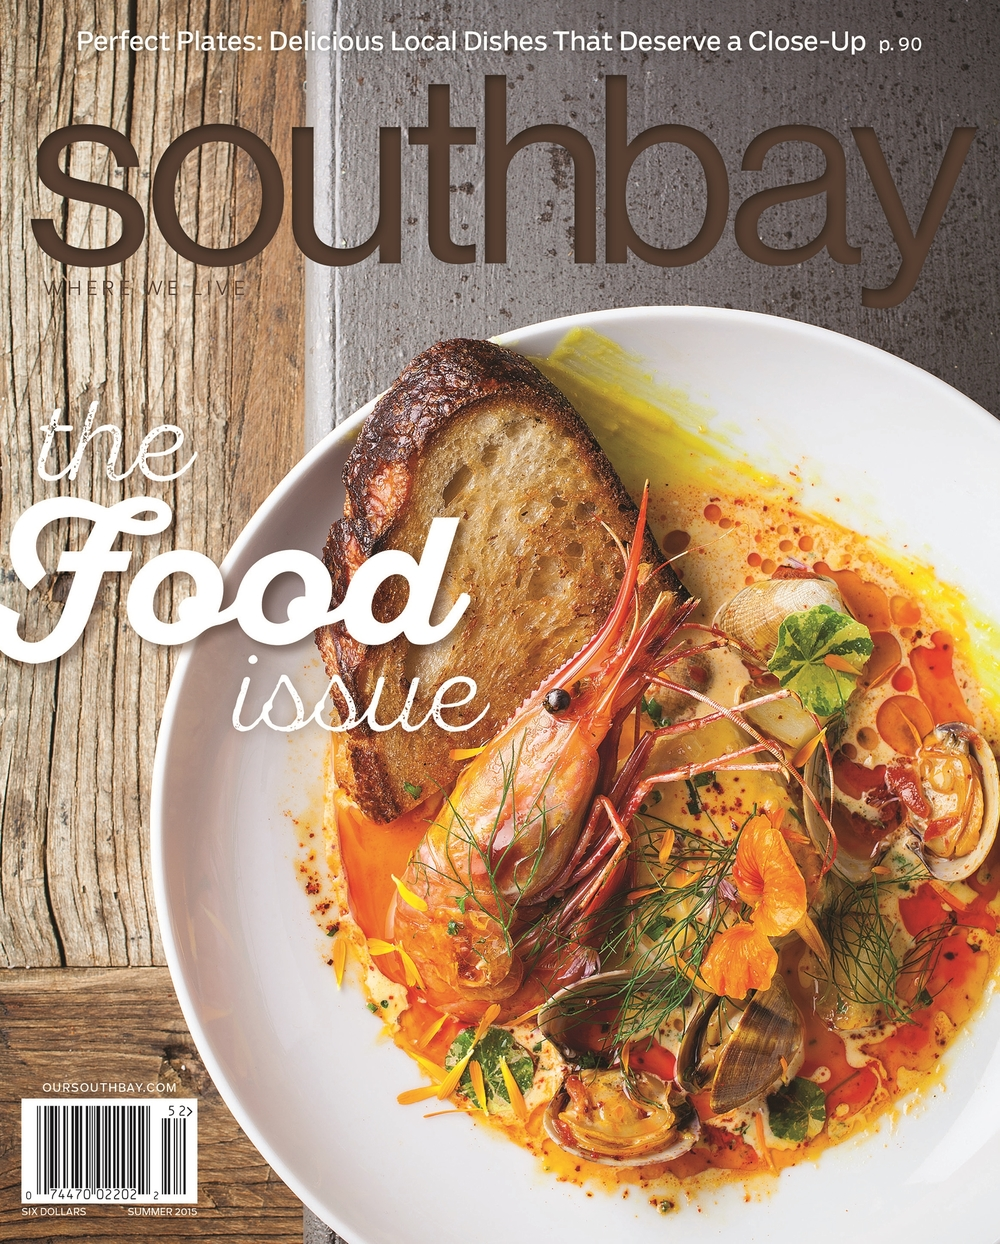 SOUTHBAY SUMMER COVER 2015